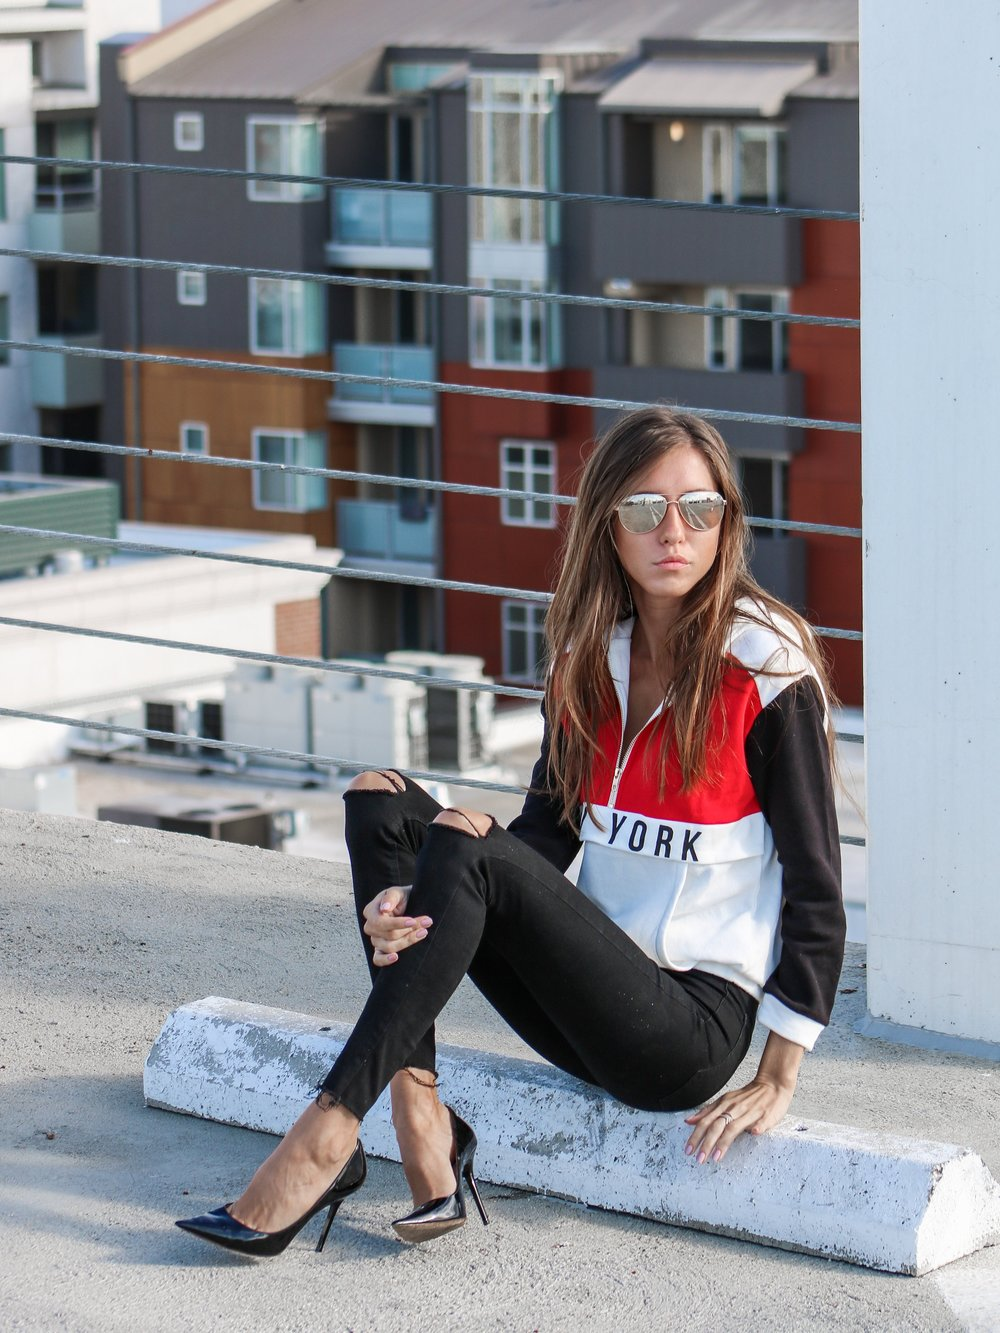 The Hungarian Brunette OOTD streetwear